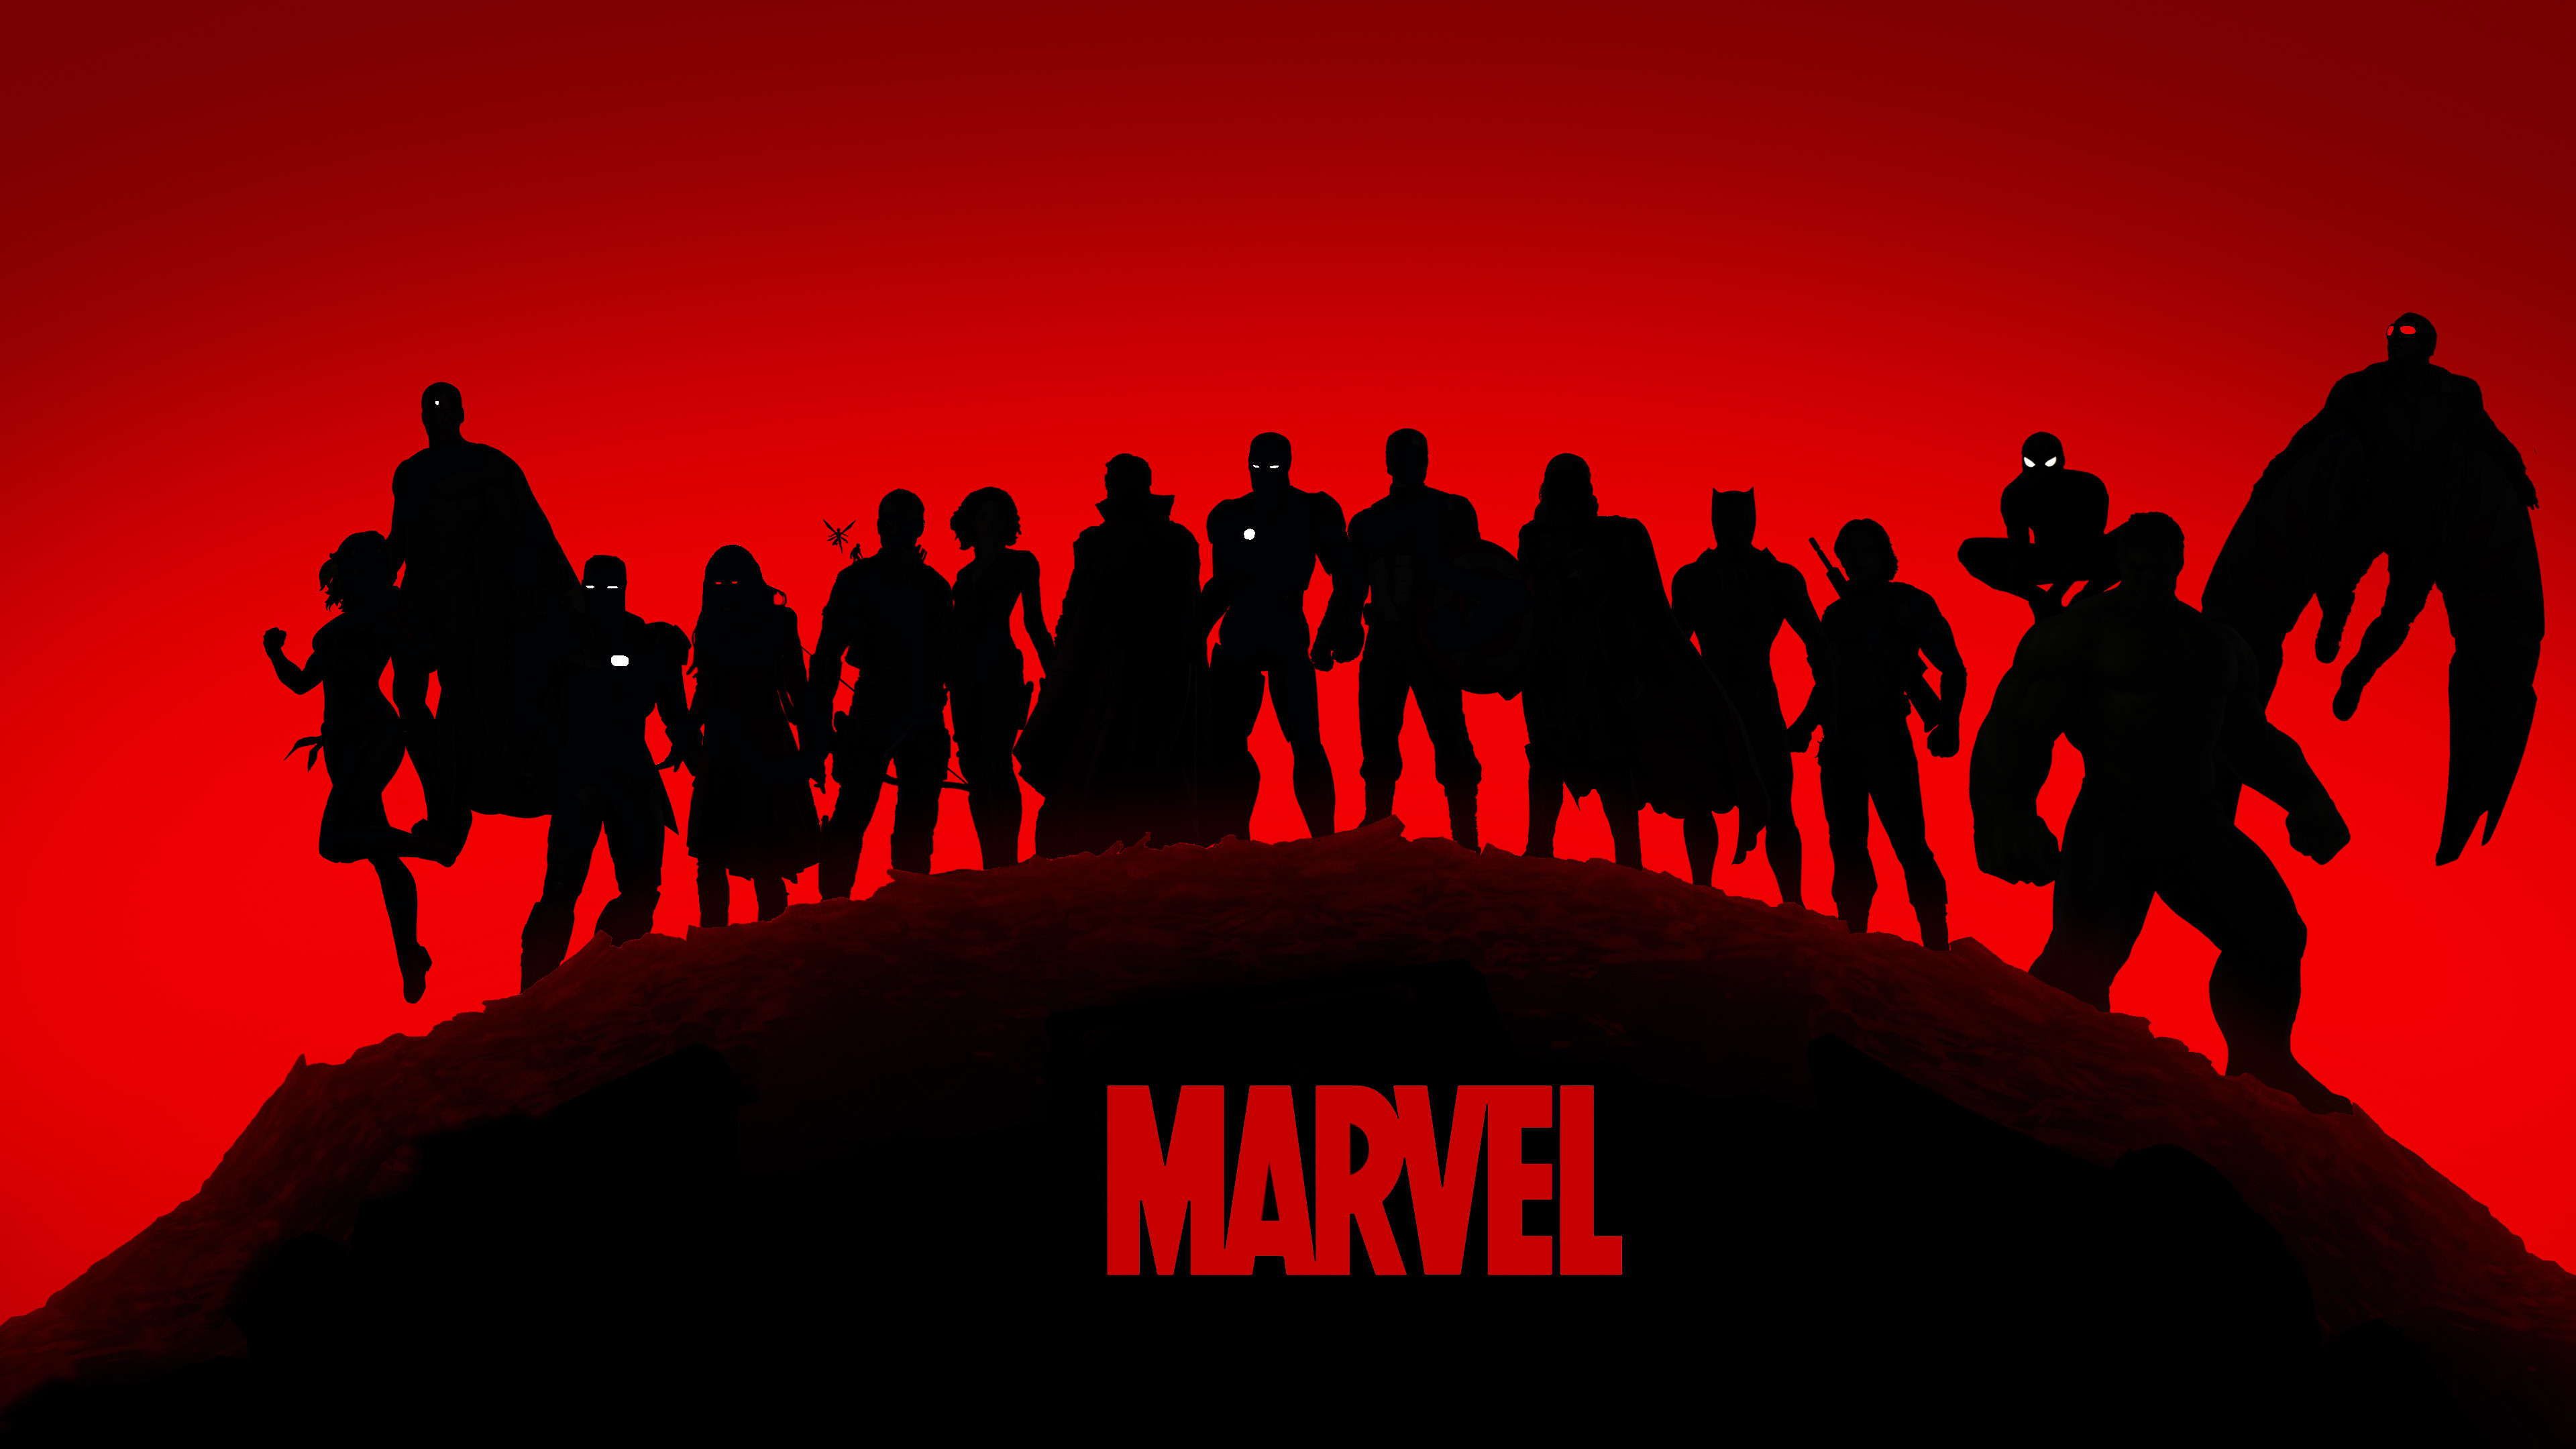 Marvel Red Skull Wallpaper 57 Images